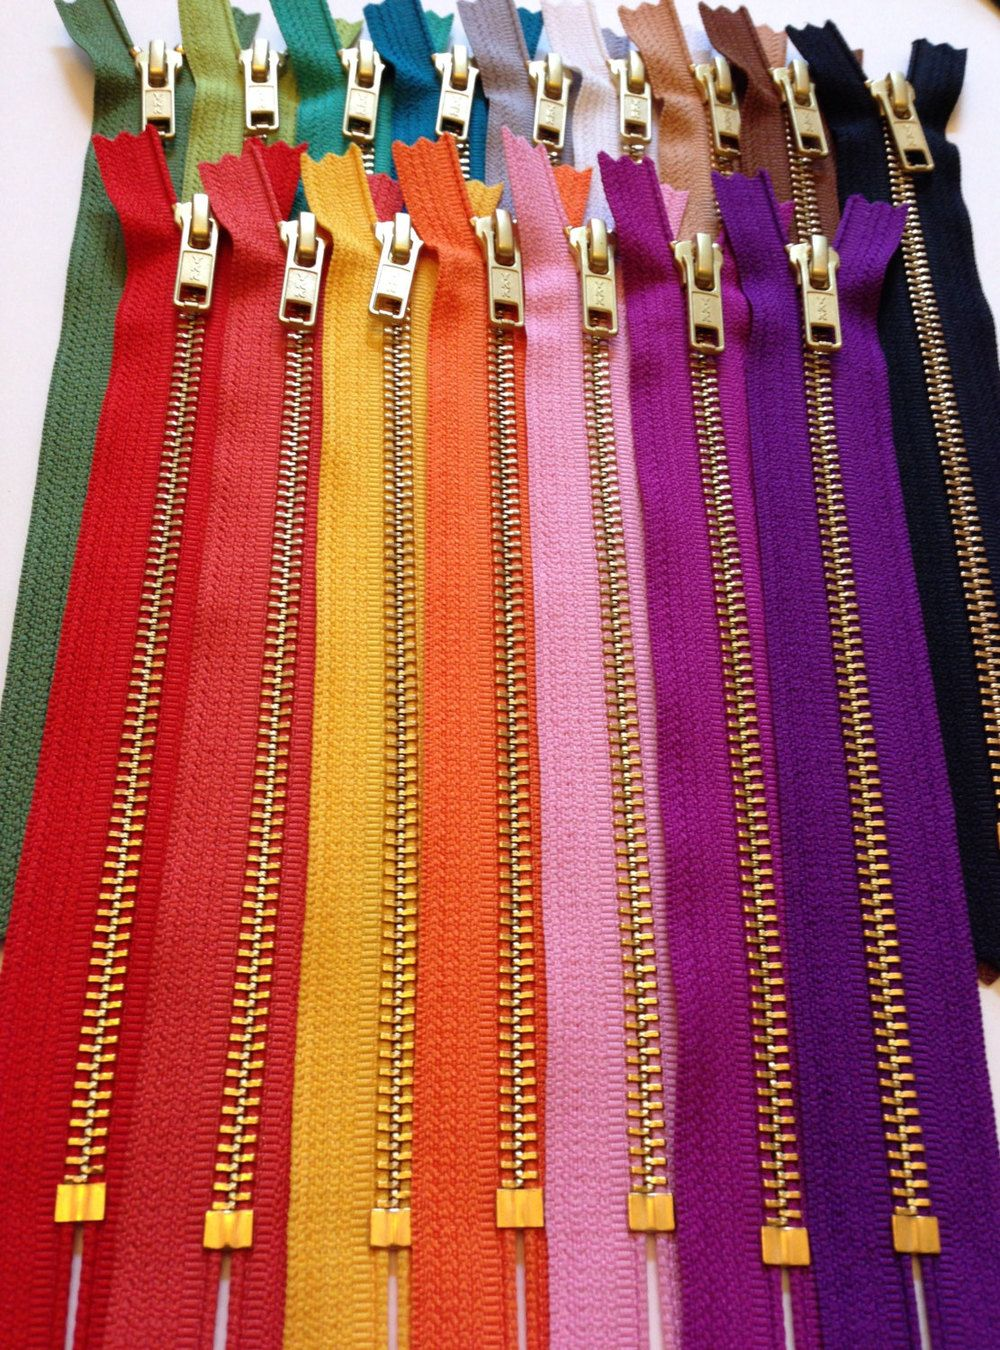 Big Teeth Zipper Pick Your Size /&Color From Navy blue or Light Pink SEPARATING